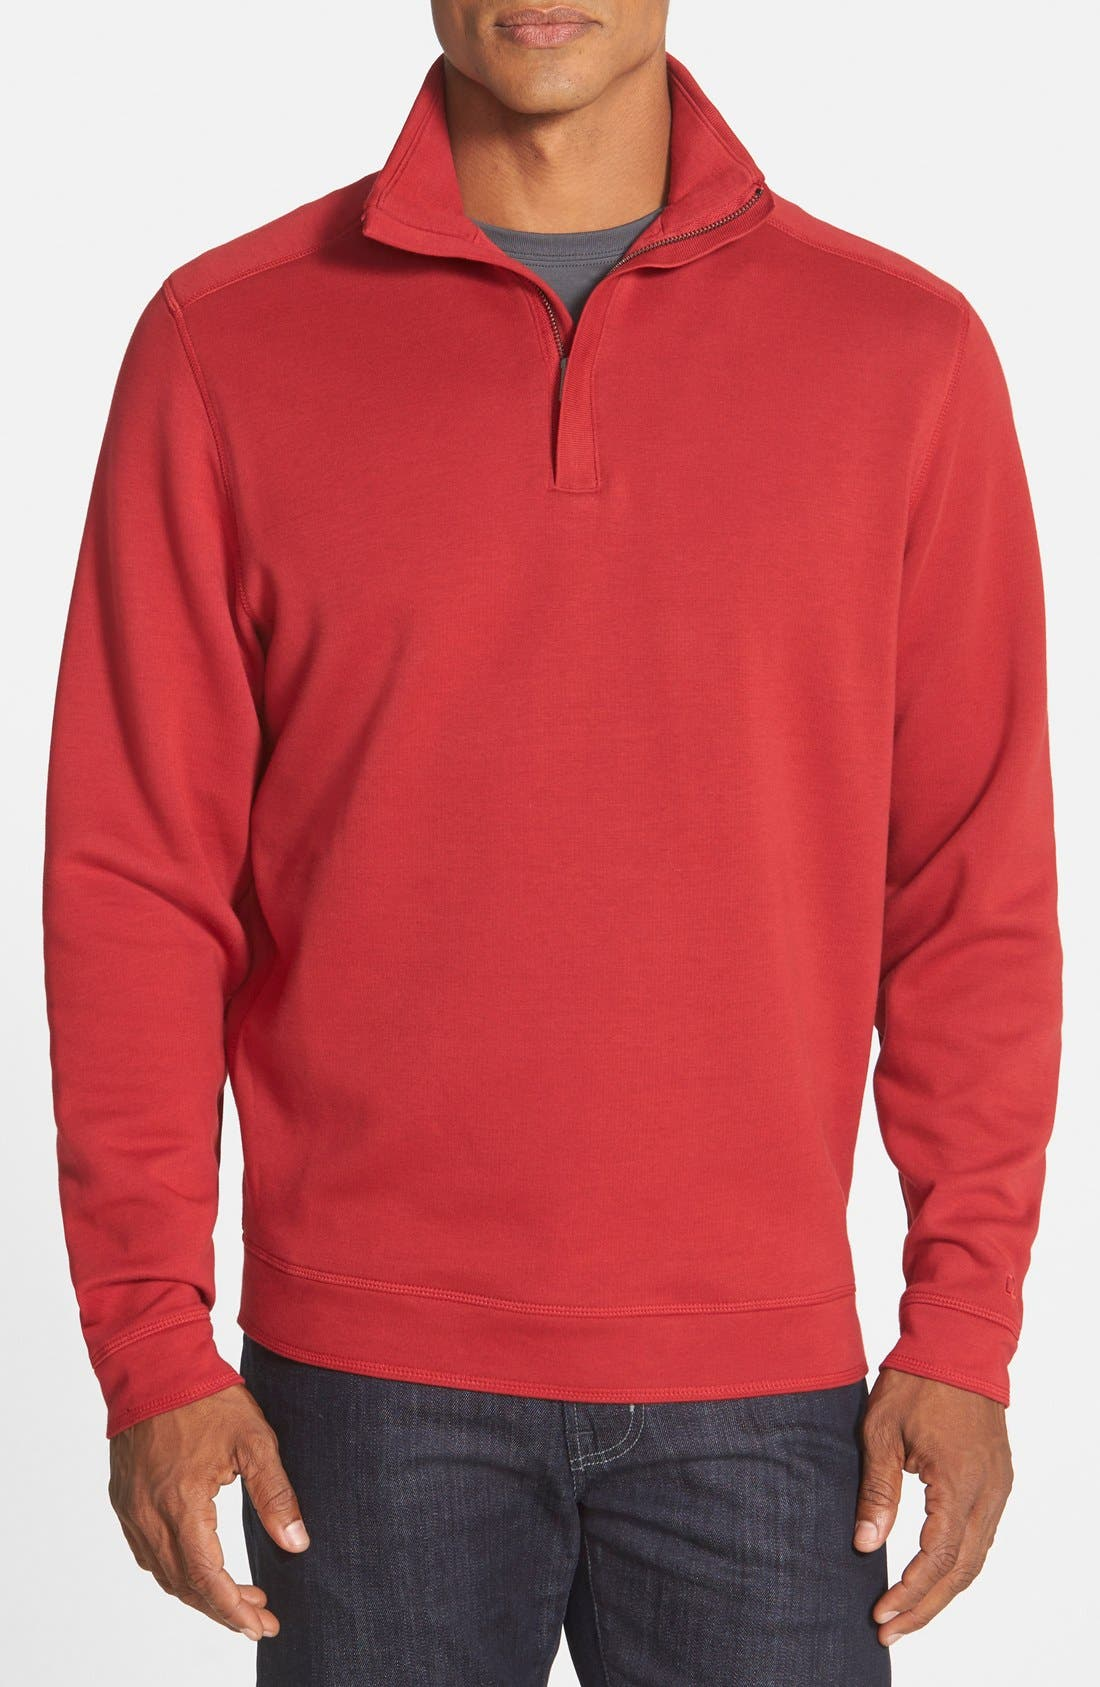 Cutter & Buck 'Decatur' Quarter Zip Pullover (Online Only)